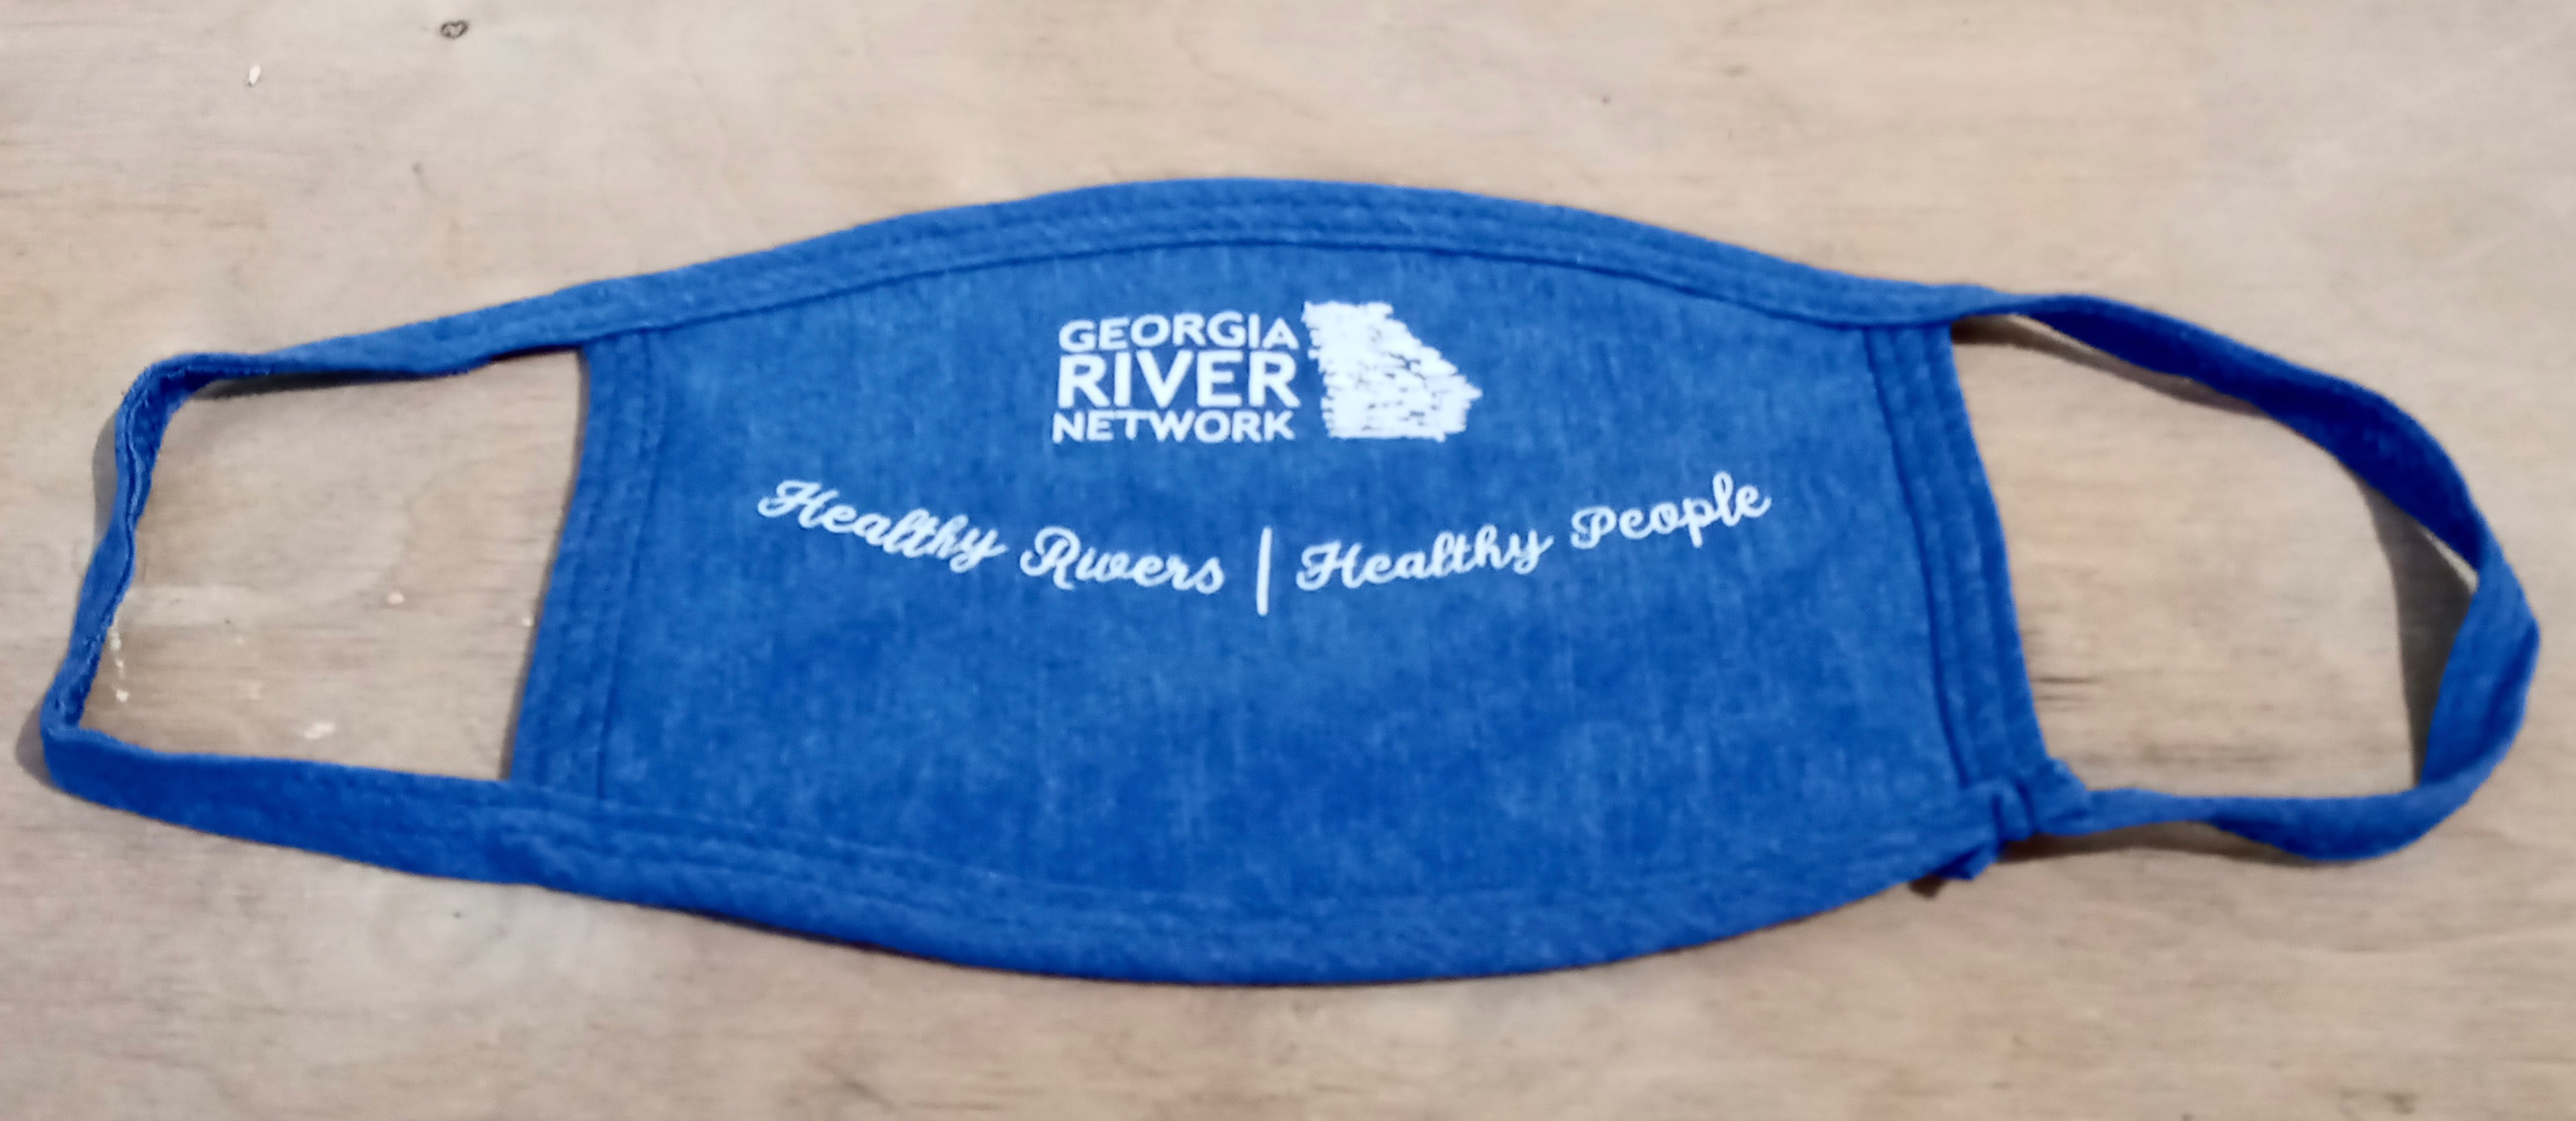 Georgia River Network Face Covering